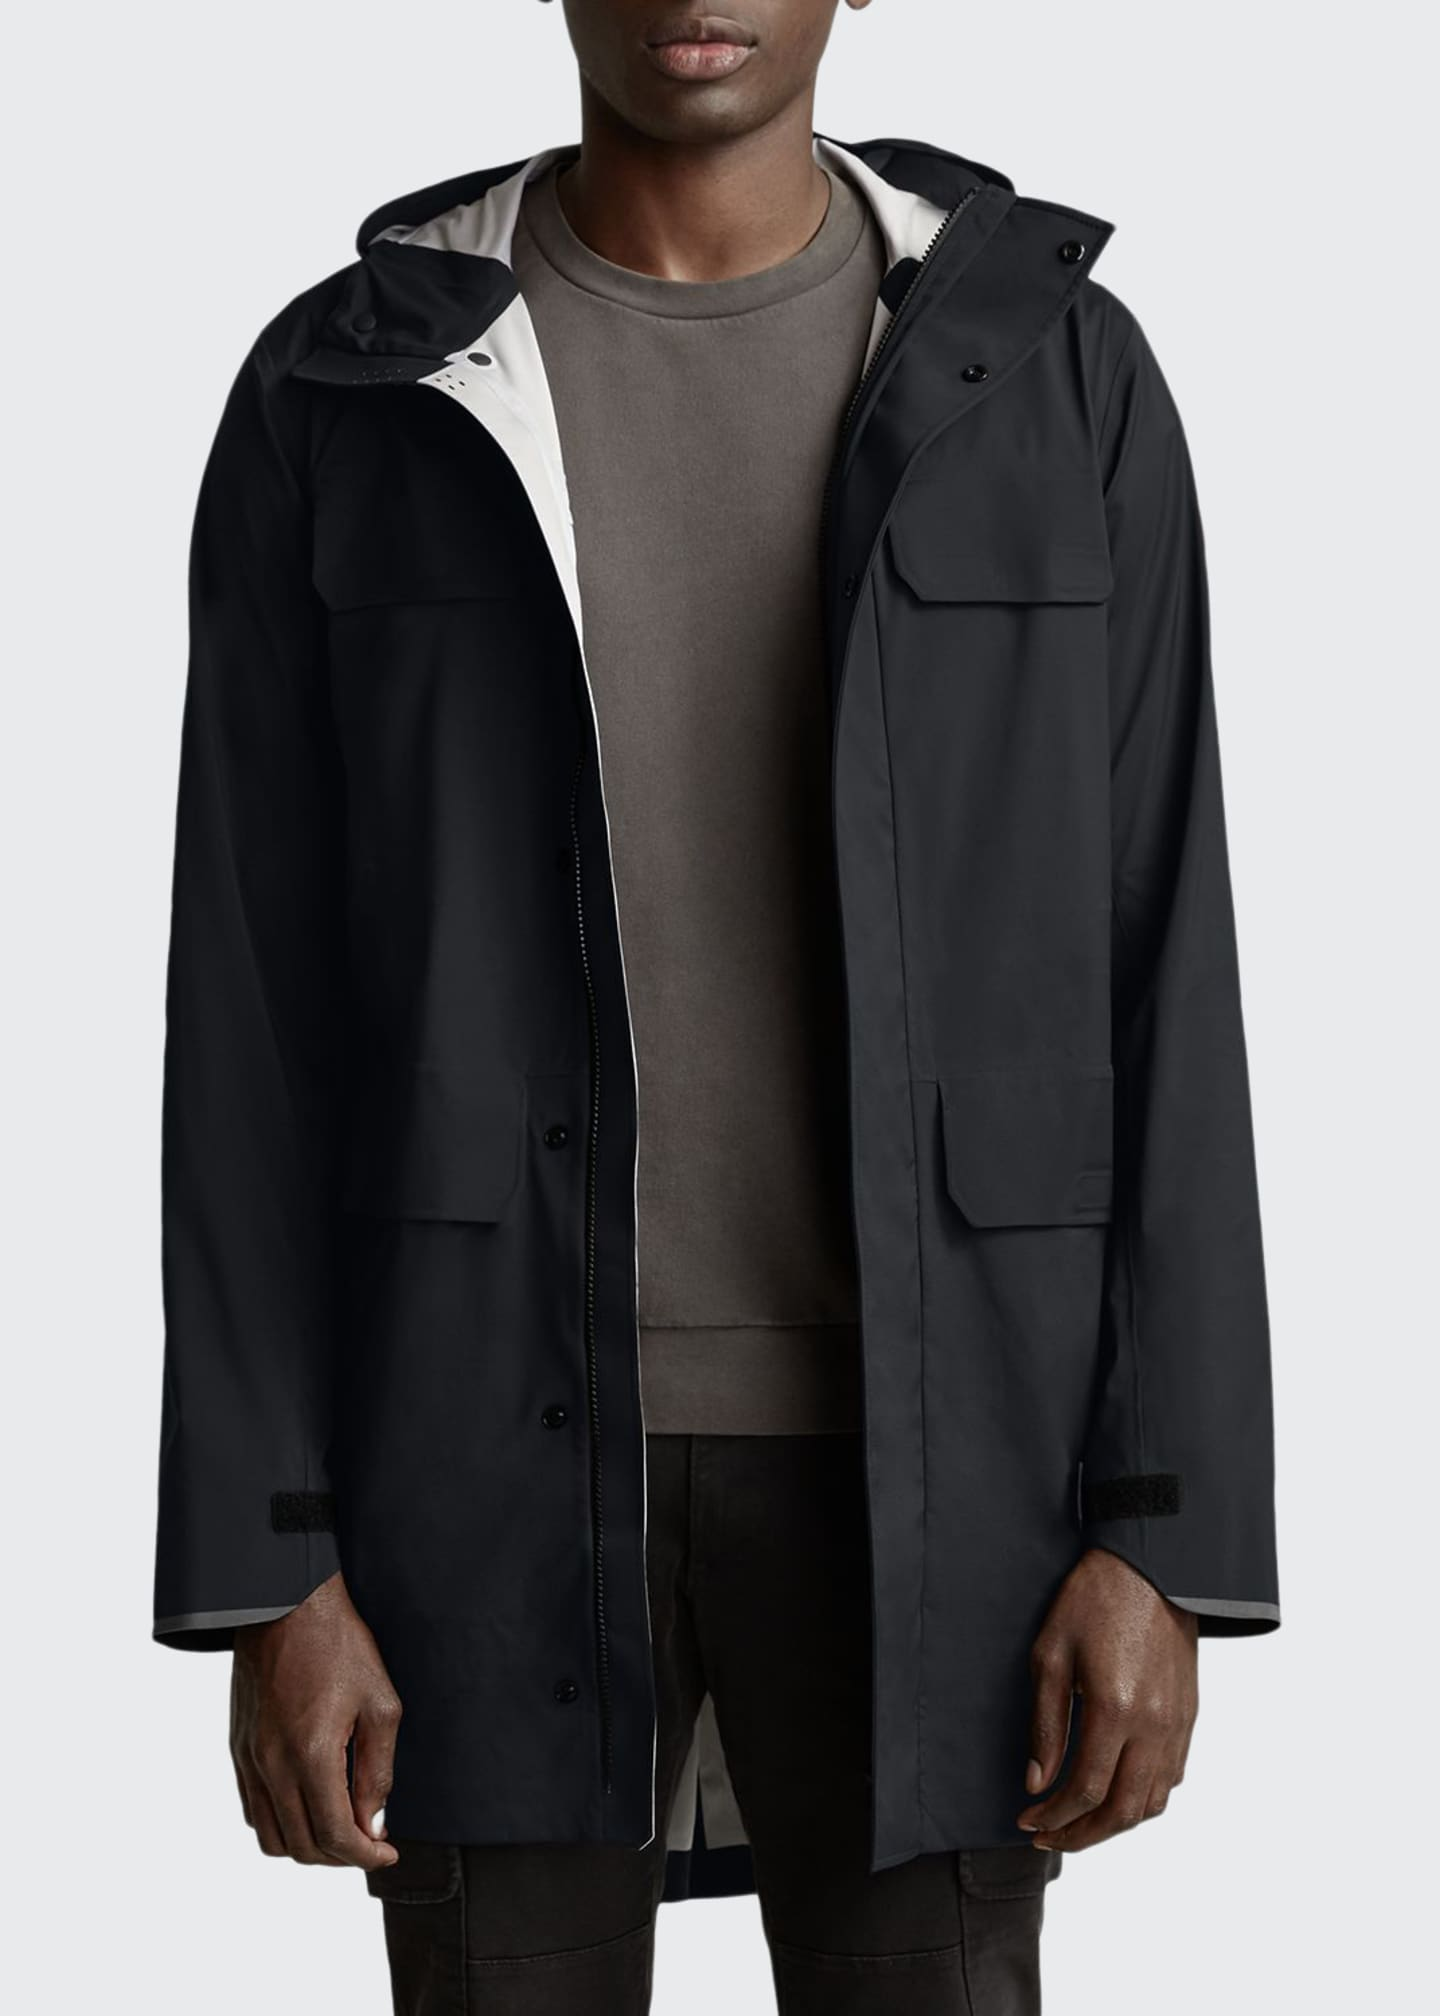 Canada Goose Men's Seawolf Hooded Jacket w/ Waterproof